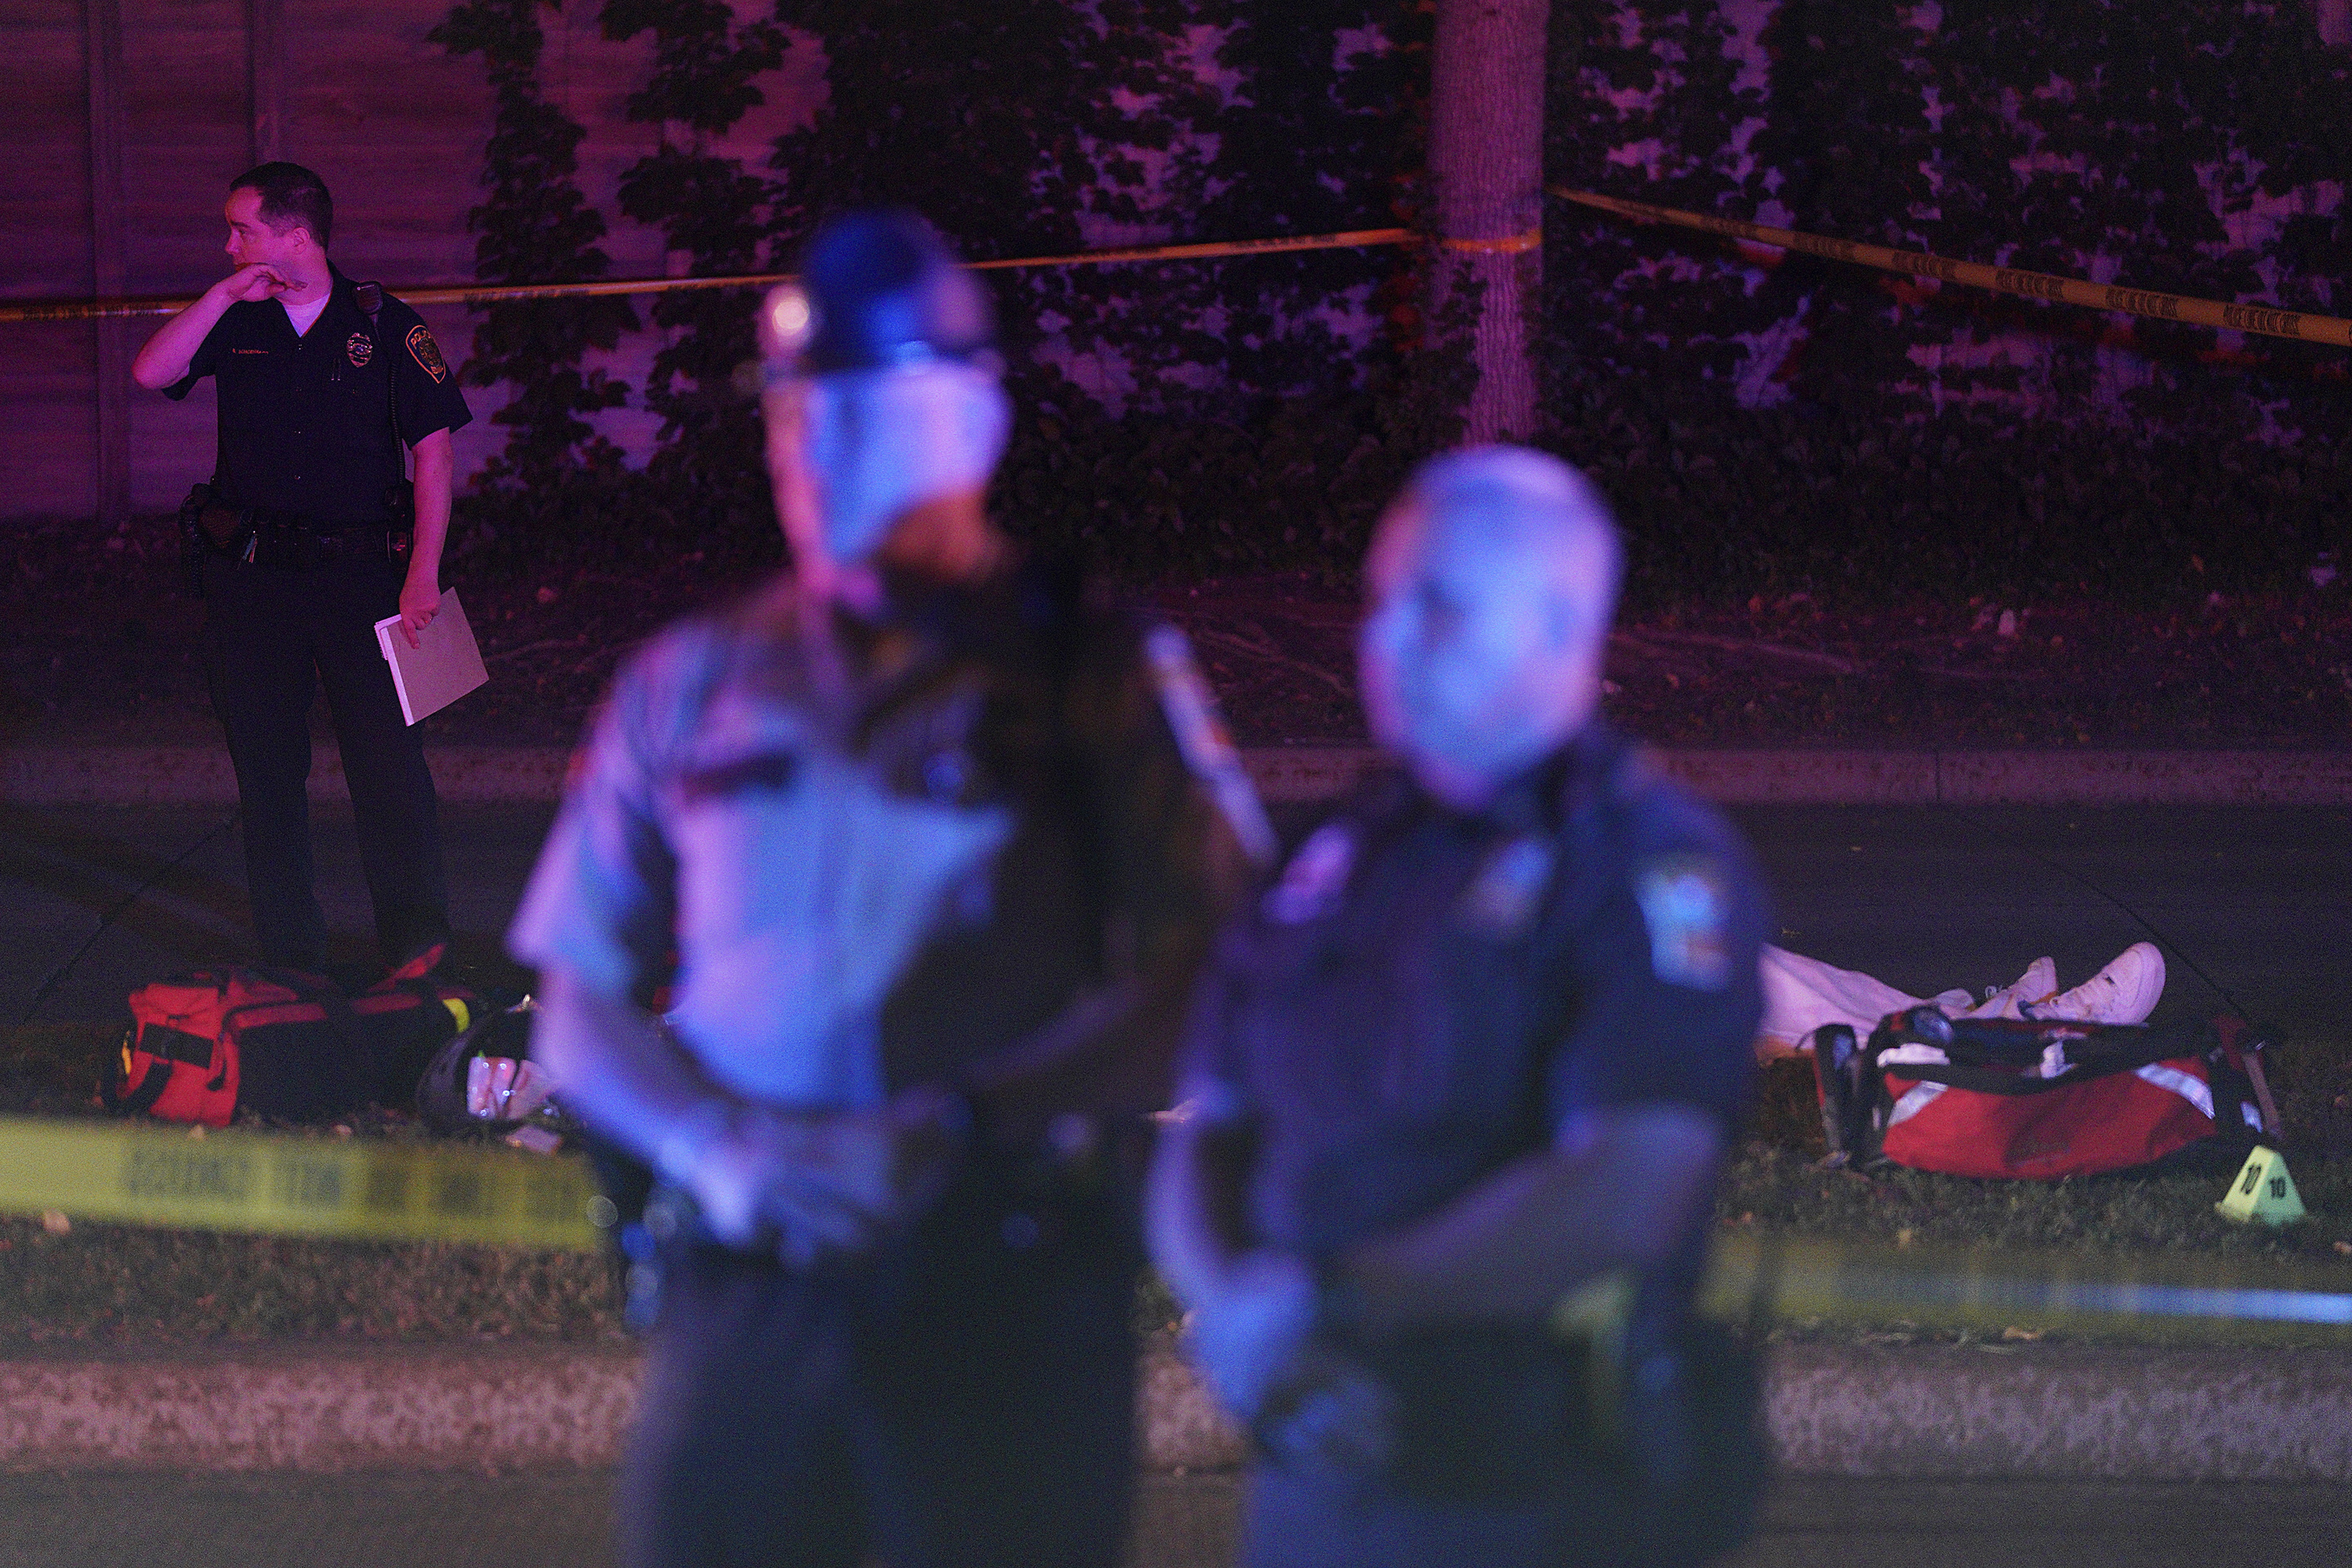 Police stand in front of a body at the scene of an officer involved shooting on East 77th Street in Richfield, Minn., Saturday night, Sept. 7, 2019. Police near Minneapolis shot and killed a driver following a chase after he apparently emerged from his car holding a knife and refused their commands to drop it. The chase started late Saturday night in Edina and ended in Richfield with officers shooting the man, Brian J. Quinones, who had streamed himself live on Facebook during the chase. (Anthony Souffle/Star Tribune via AP)